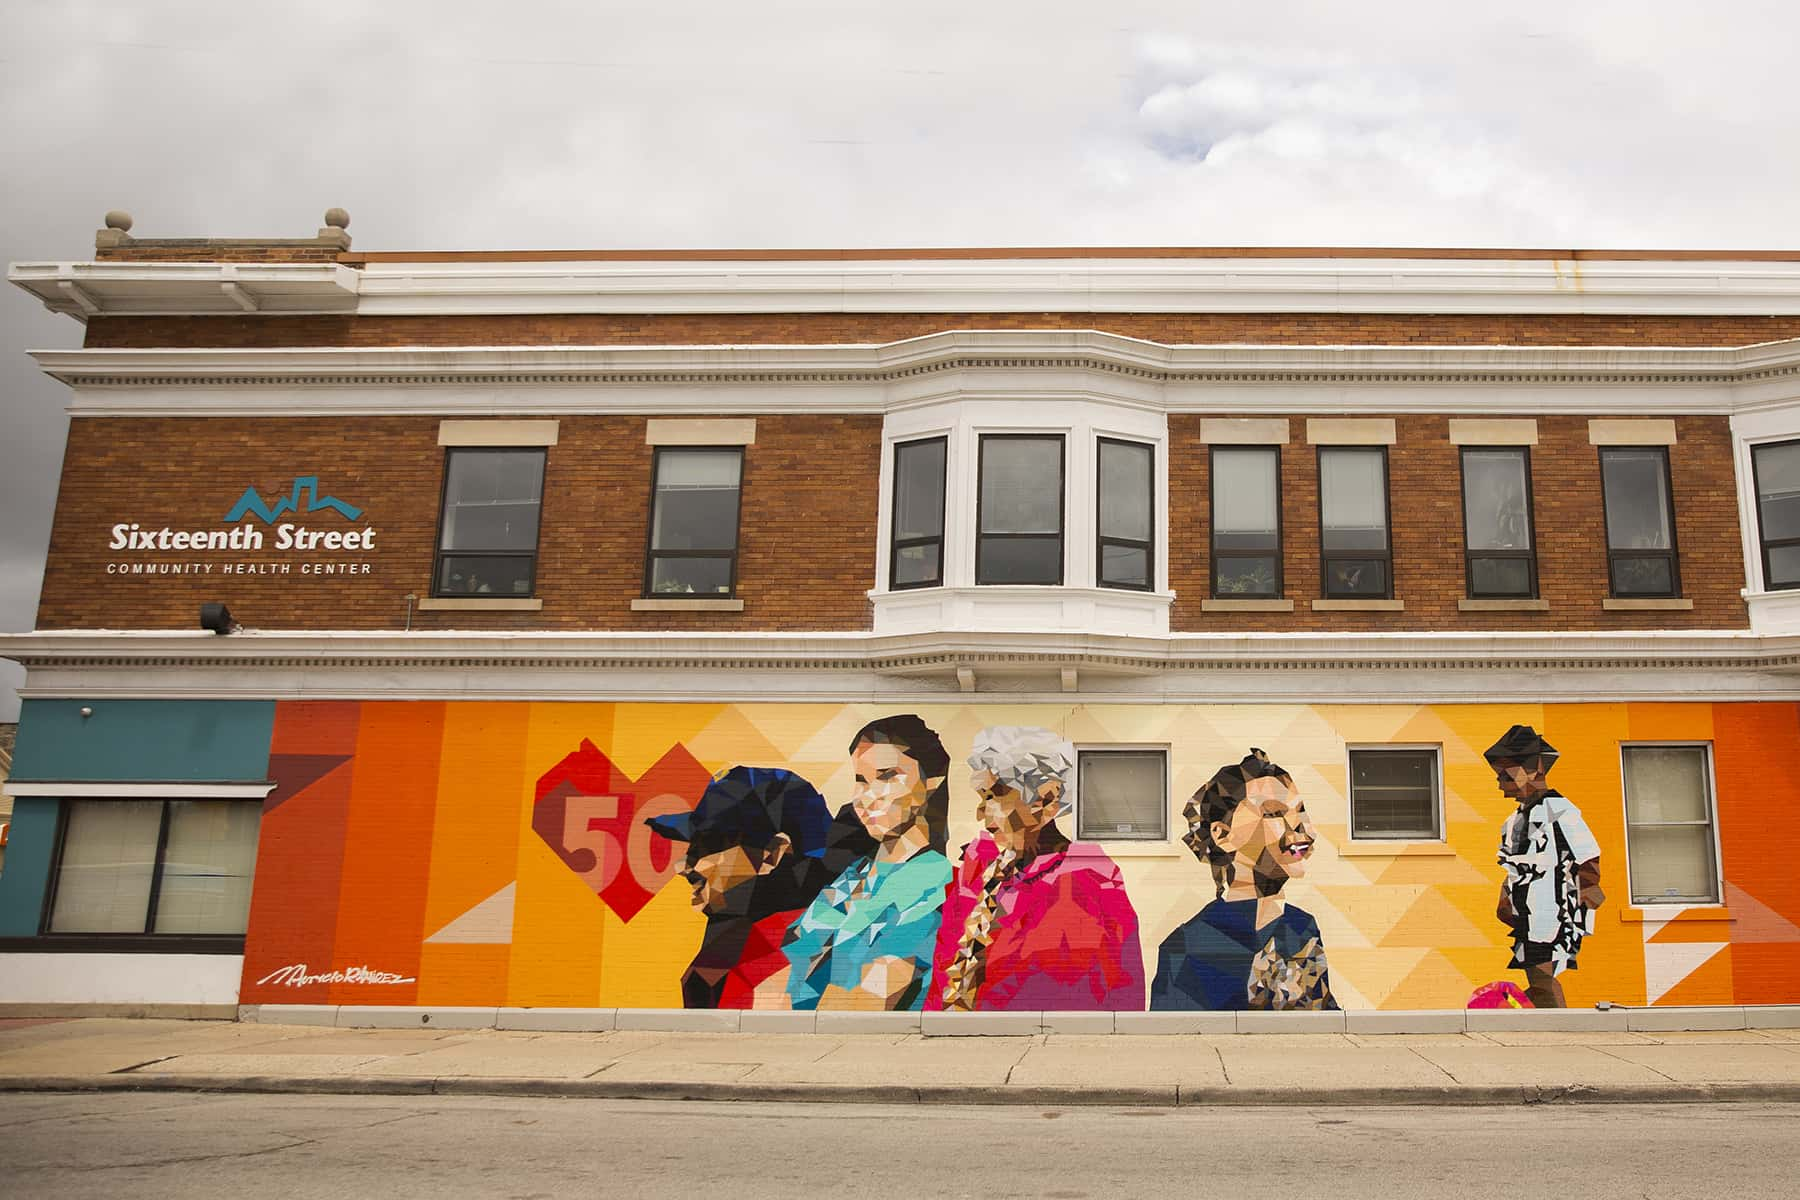 051219_16thstmural50th_09